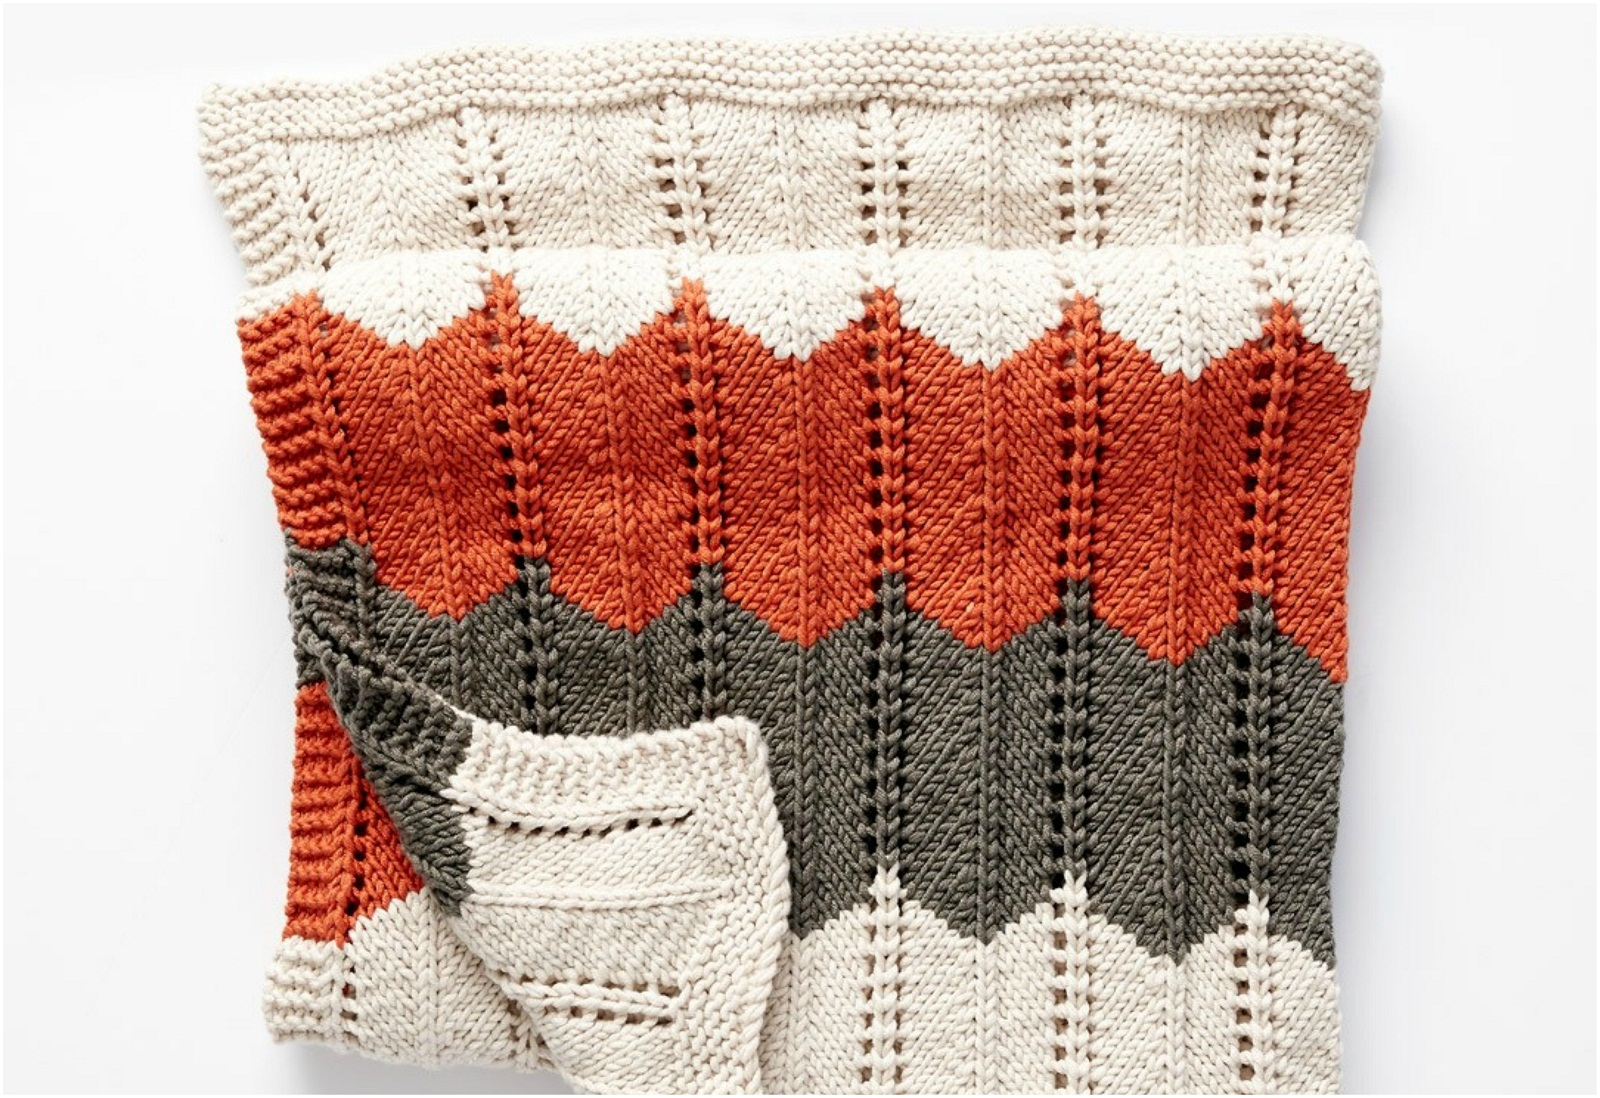 Ripple & Ridge Blanket – Free Knitting Pattern